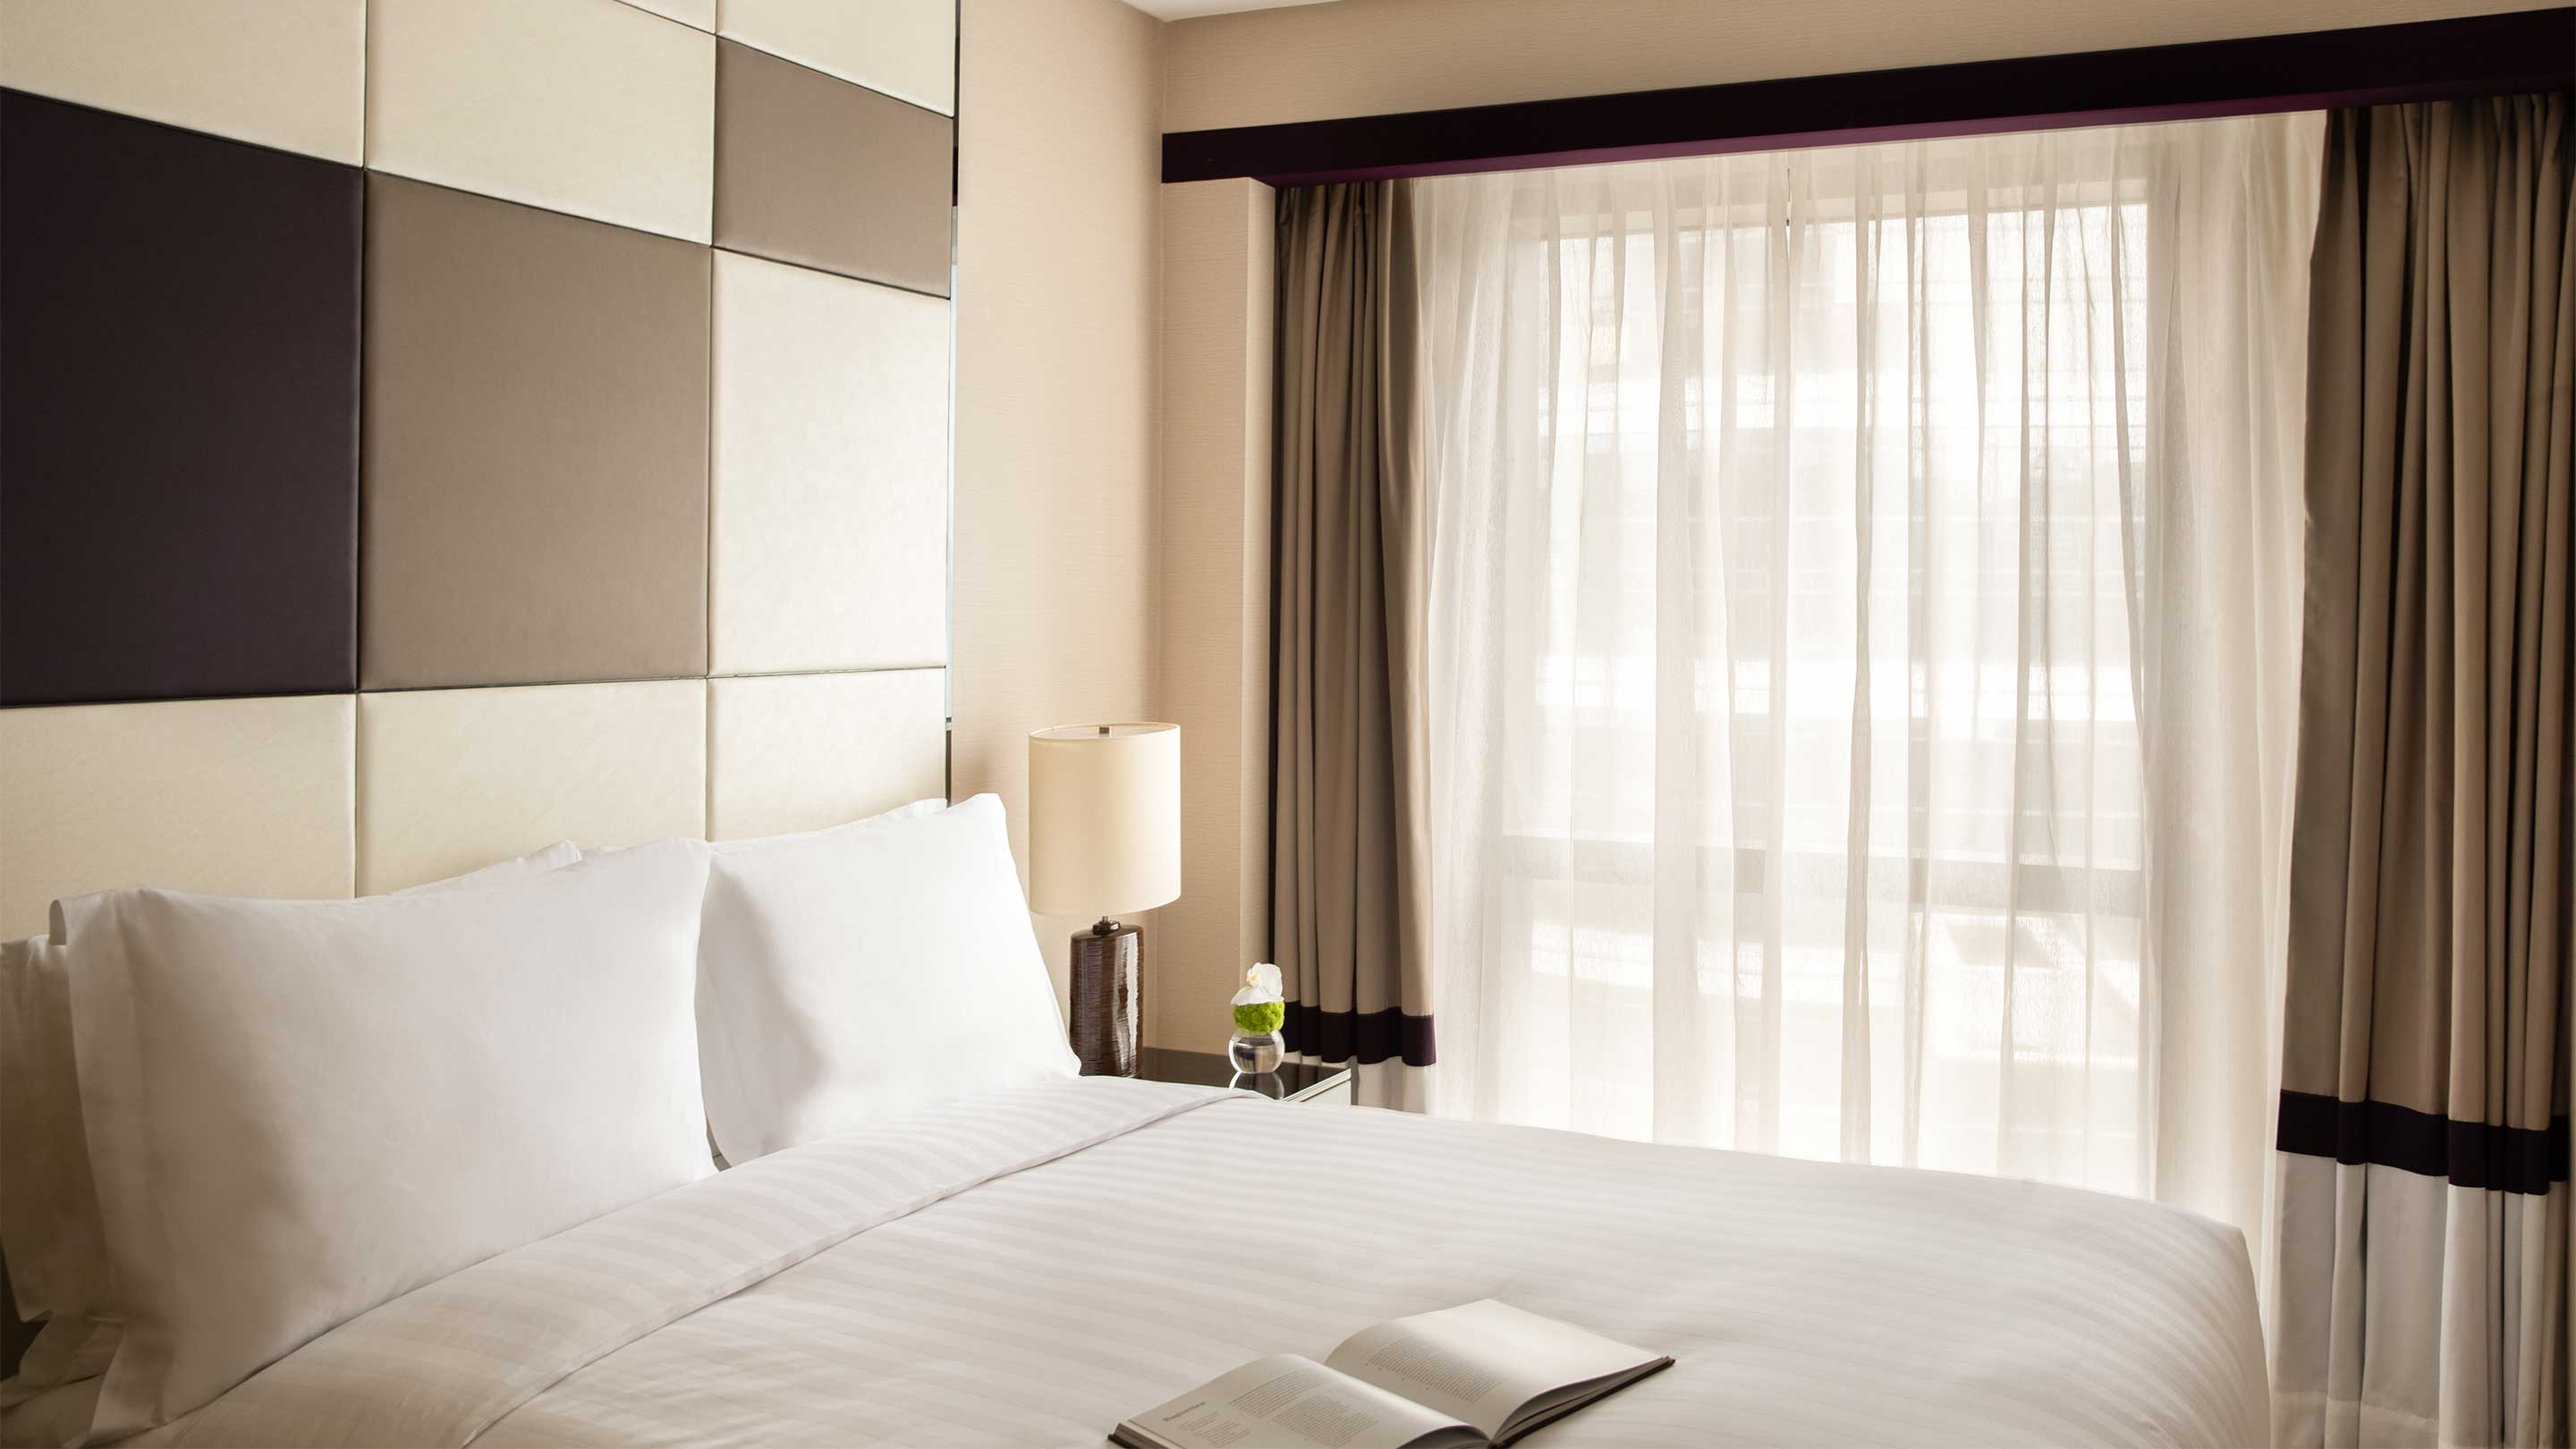 16-9 JUMEIRAH LIVING GUANGZHOU Contemporary 3 bed room suite bed room 03